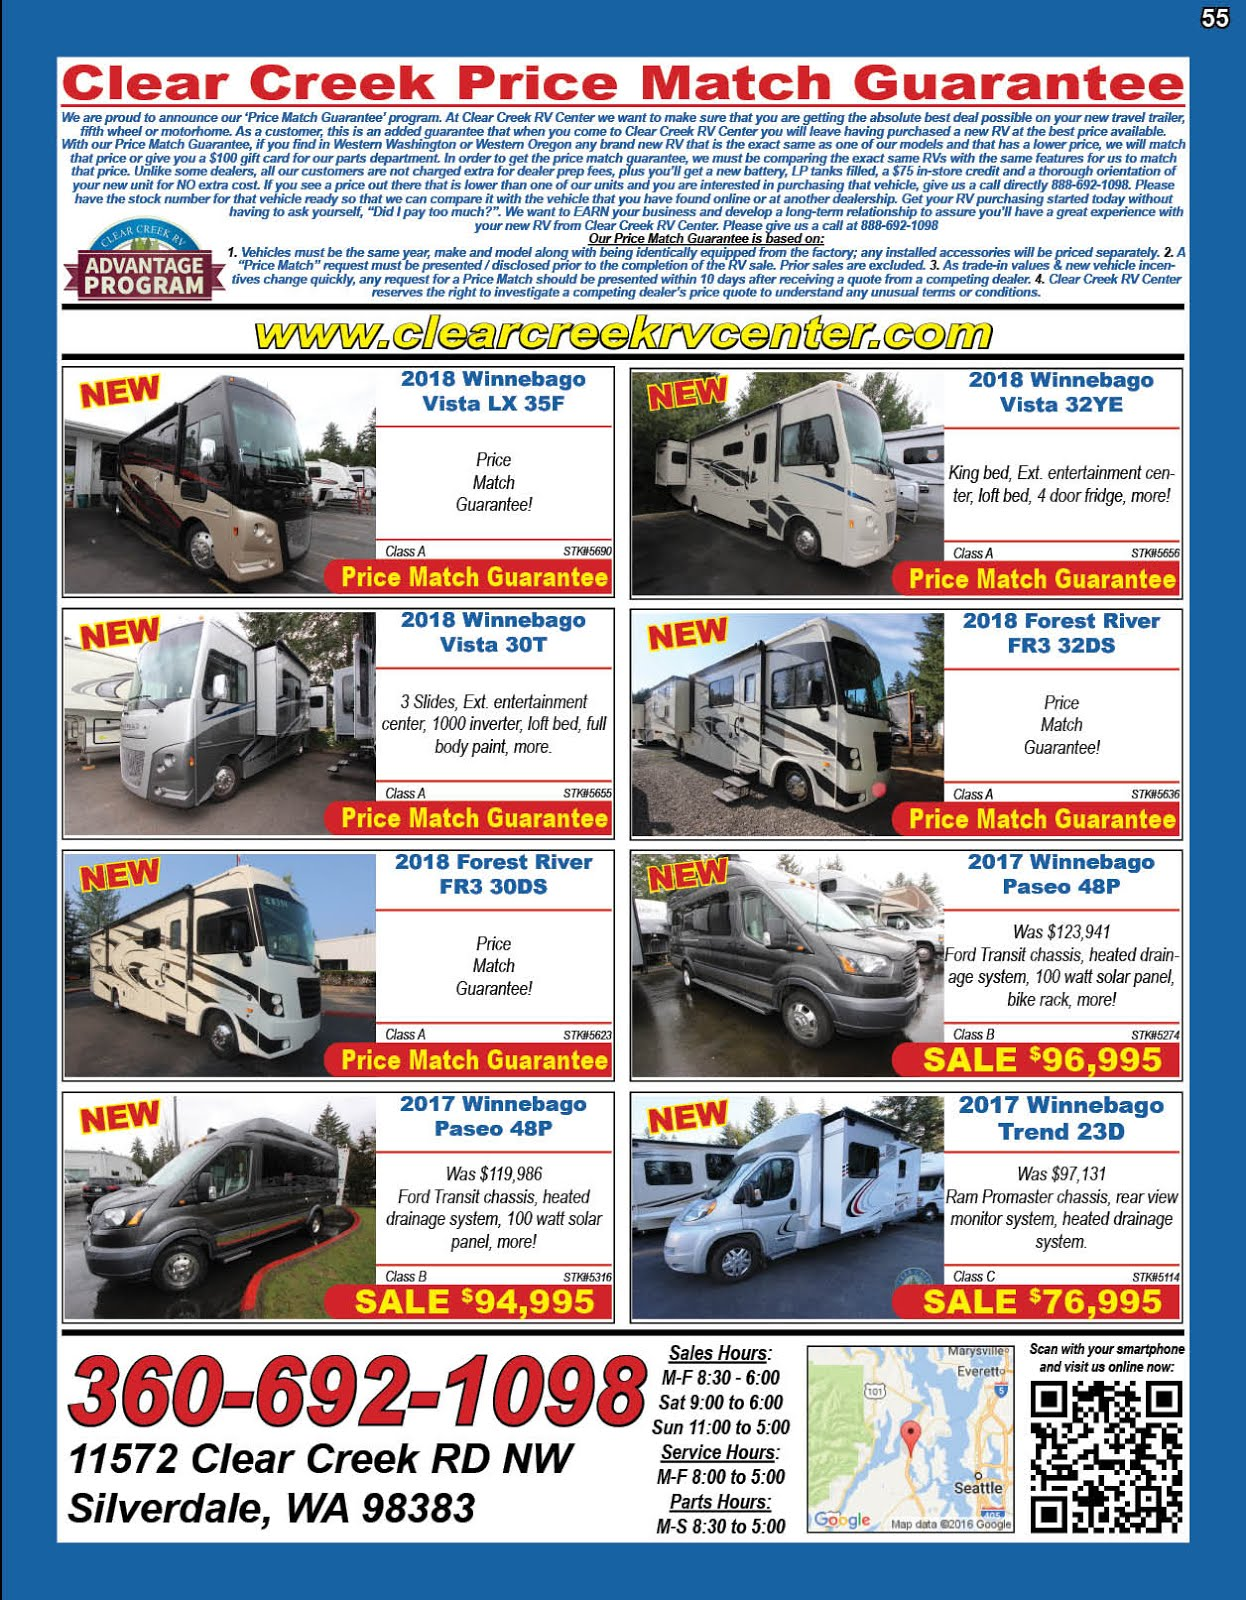 Clear Creek RV Center Pre-Owned Inventory Sale!!